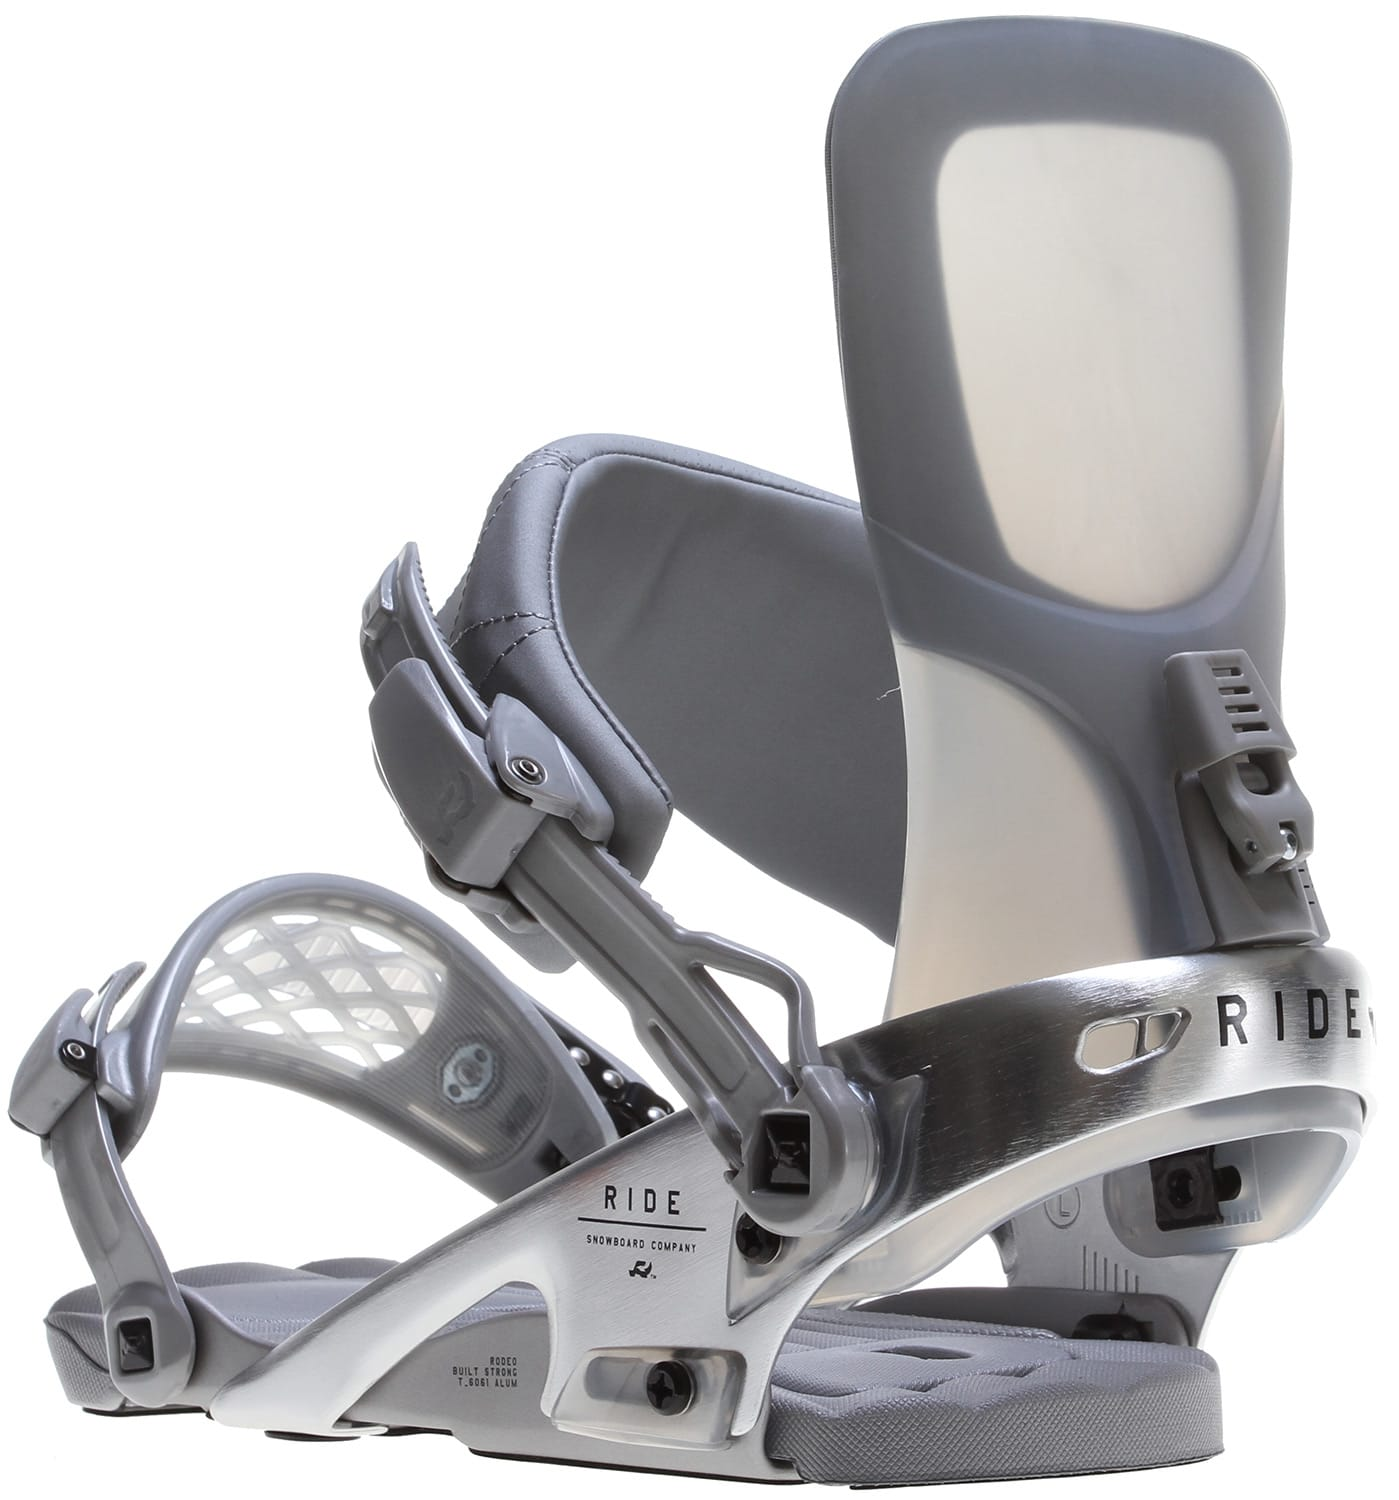 On Sale Ride Rodeo LTD Snowboard Bindings Up To 45% Off